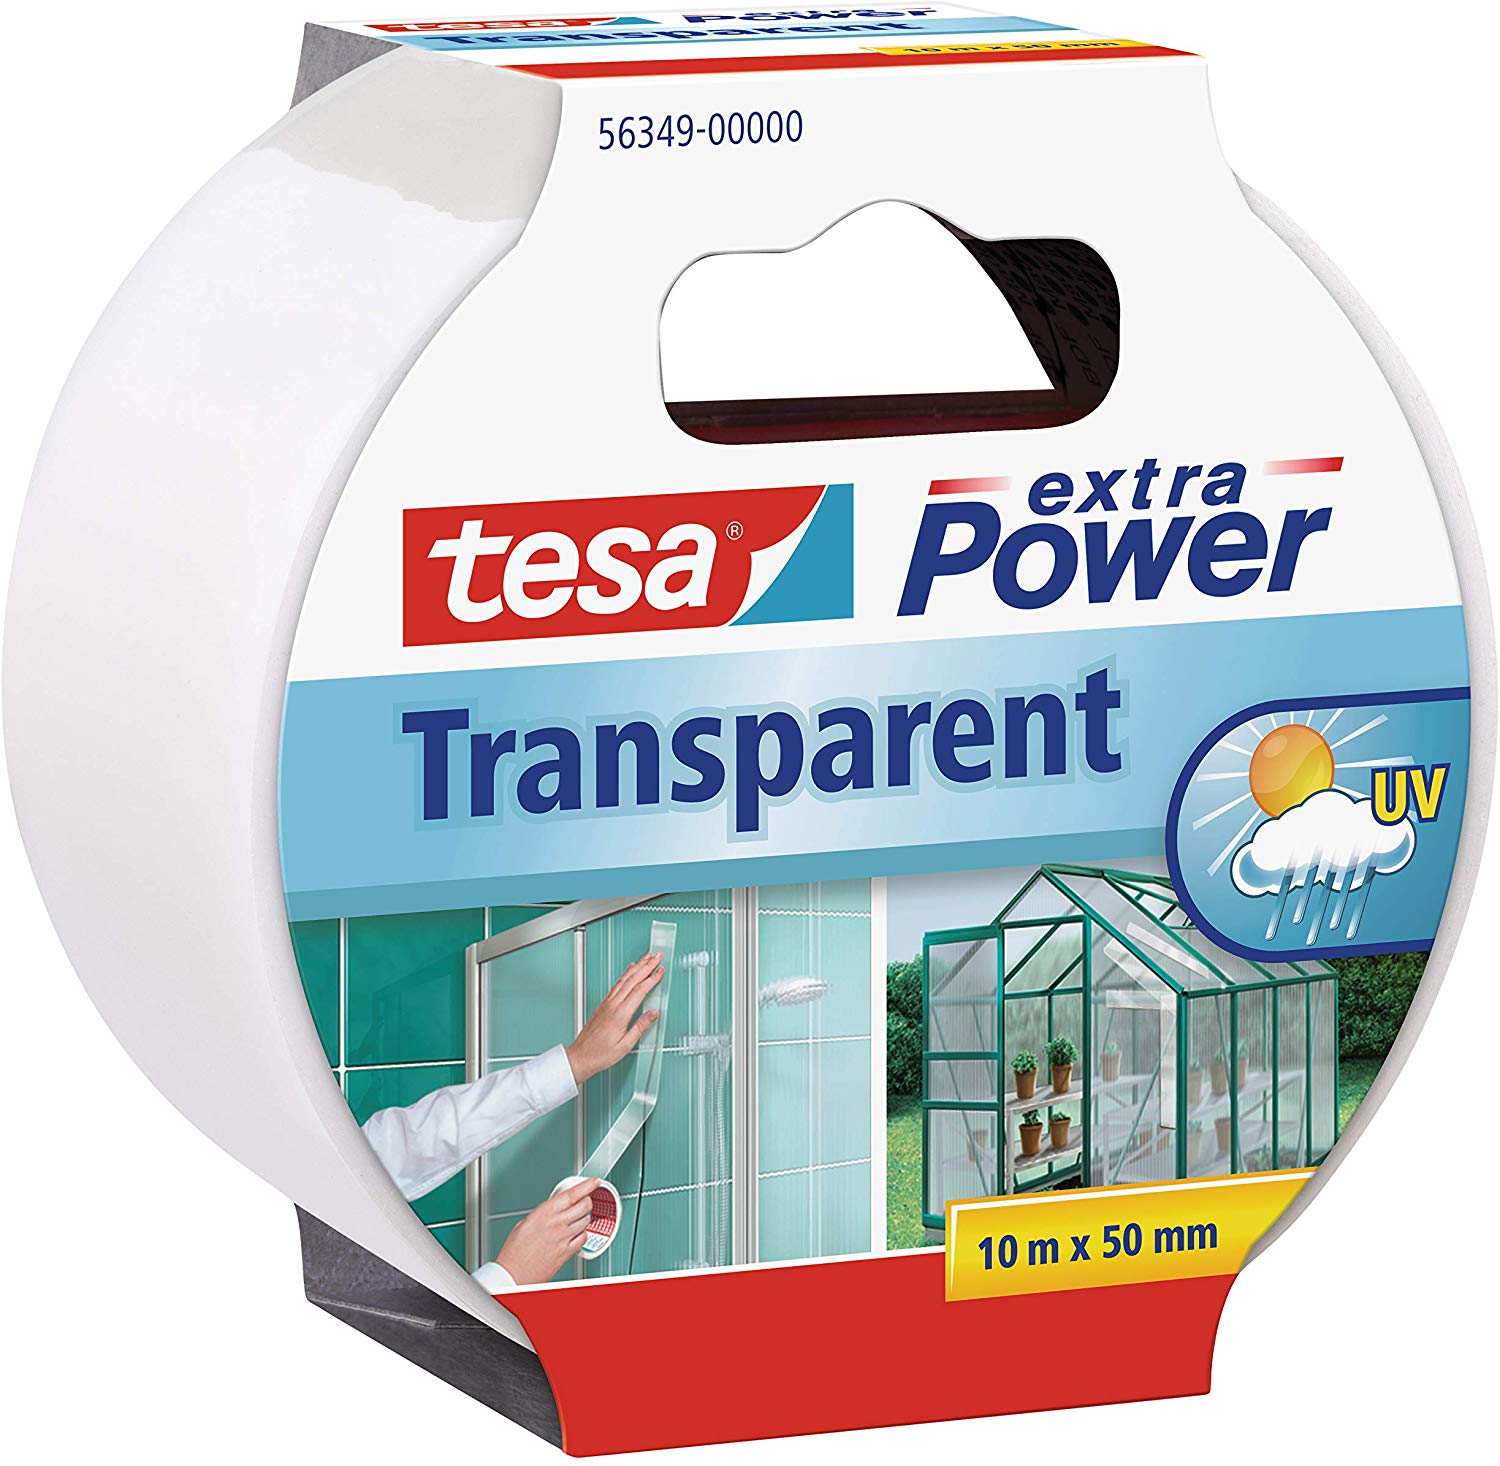 tesa Reparaturband extra Power, transparent, 10m x 50mm